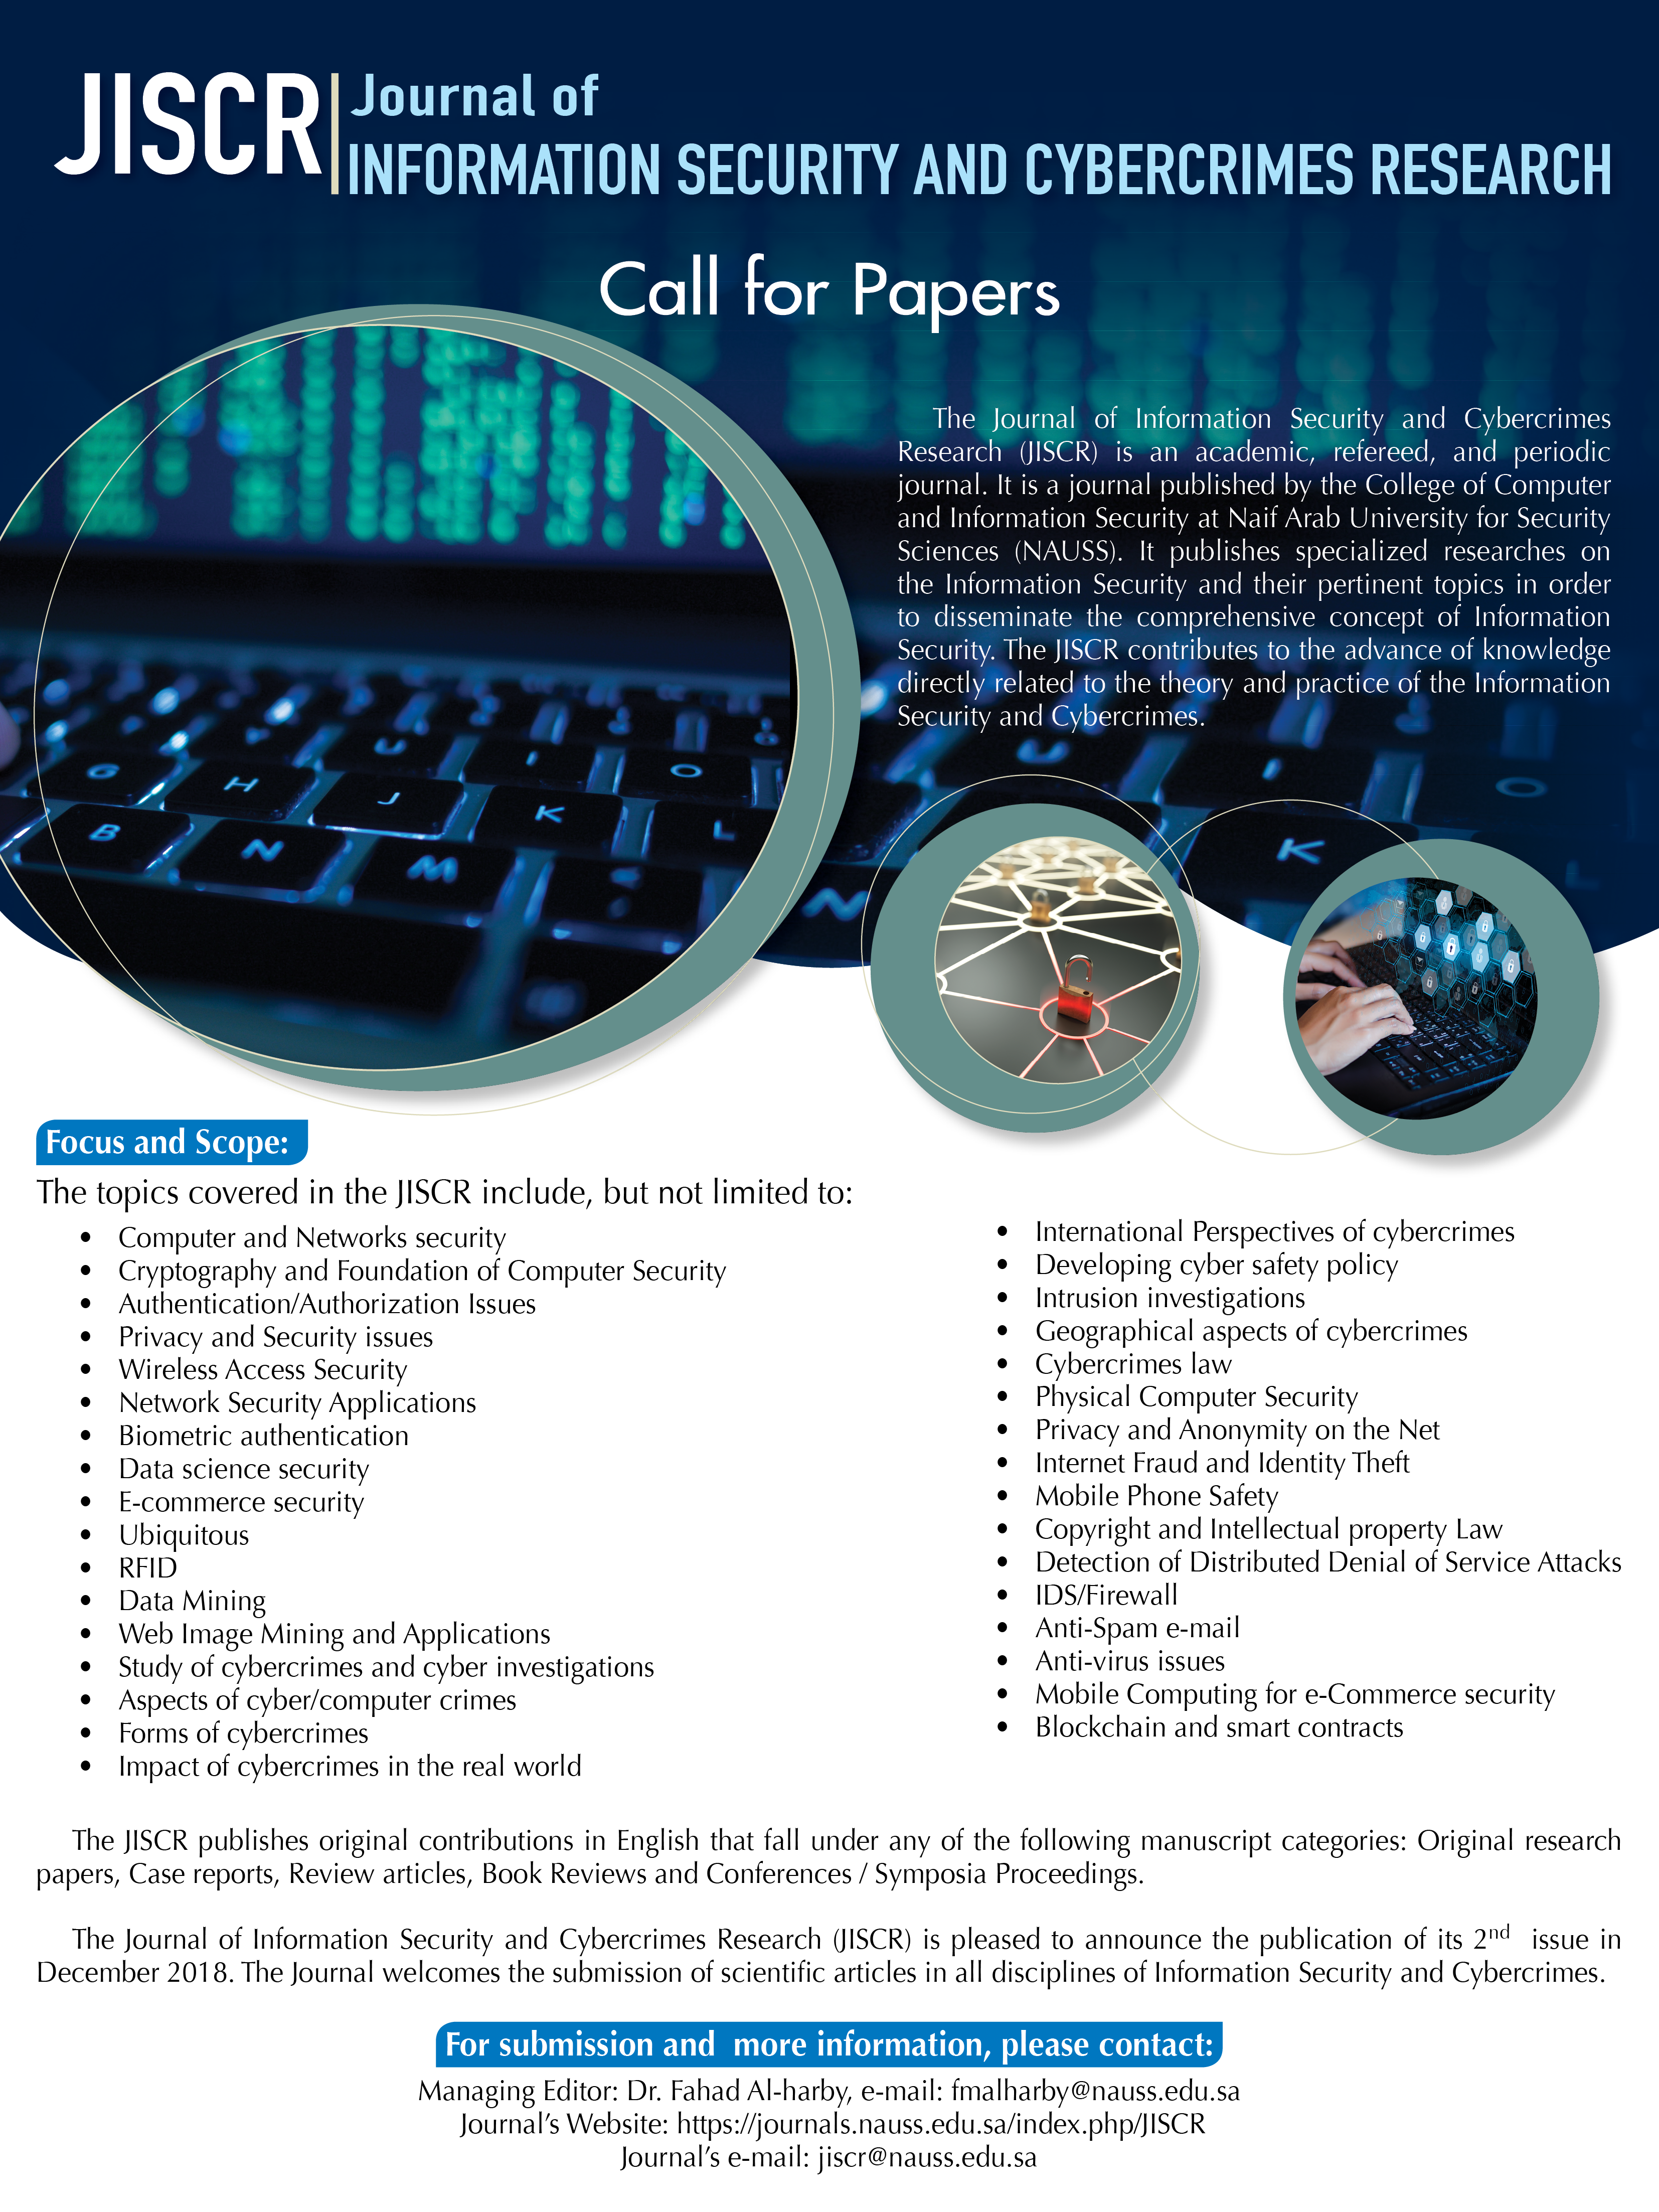 009 Research Paper Call For December Cyber Security Papers Amazing Pdf On Full